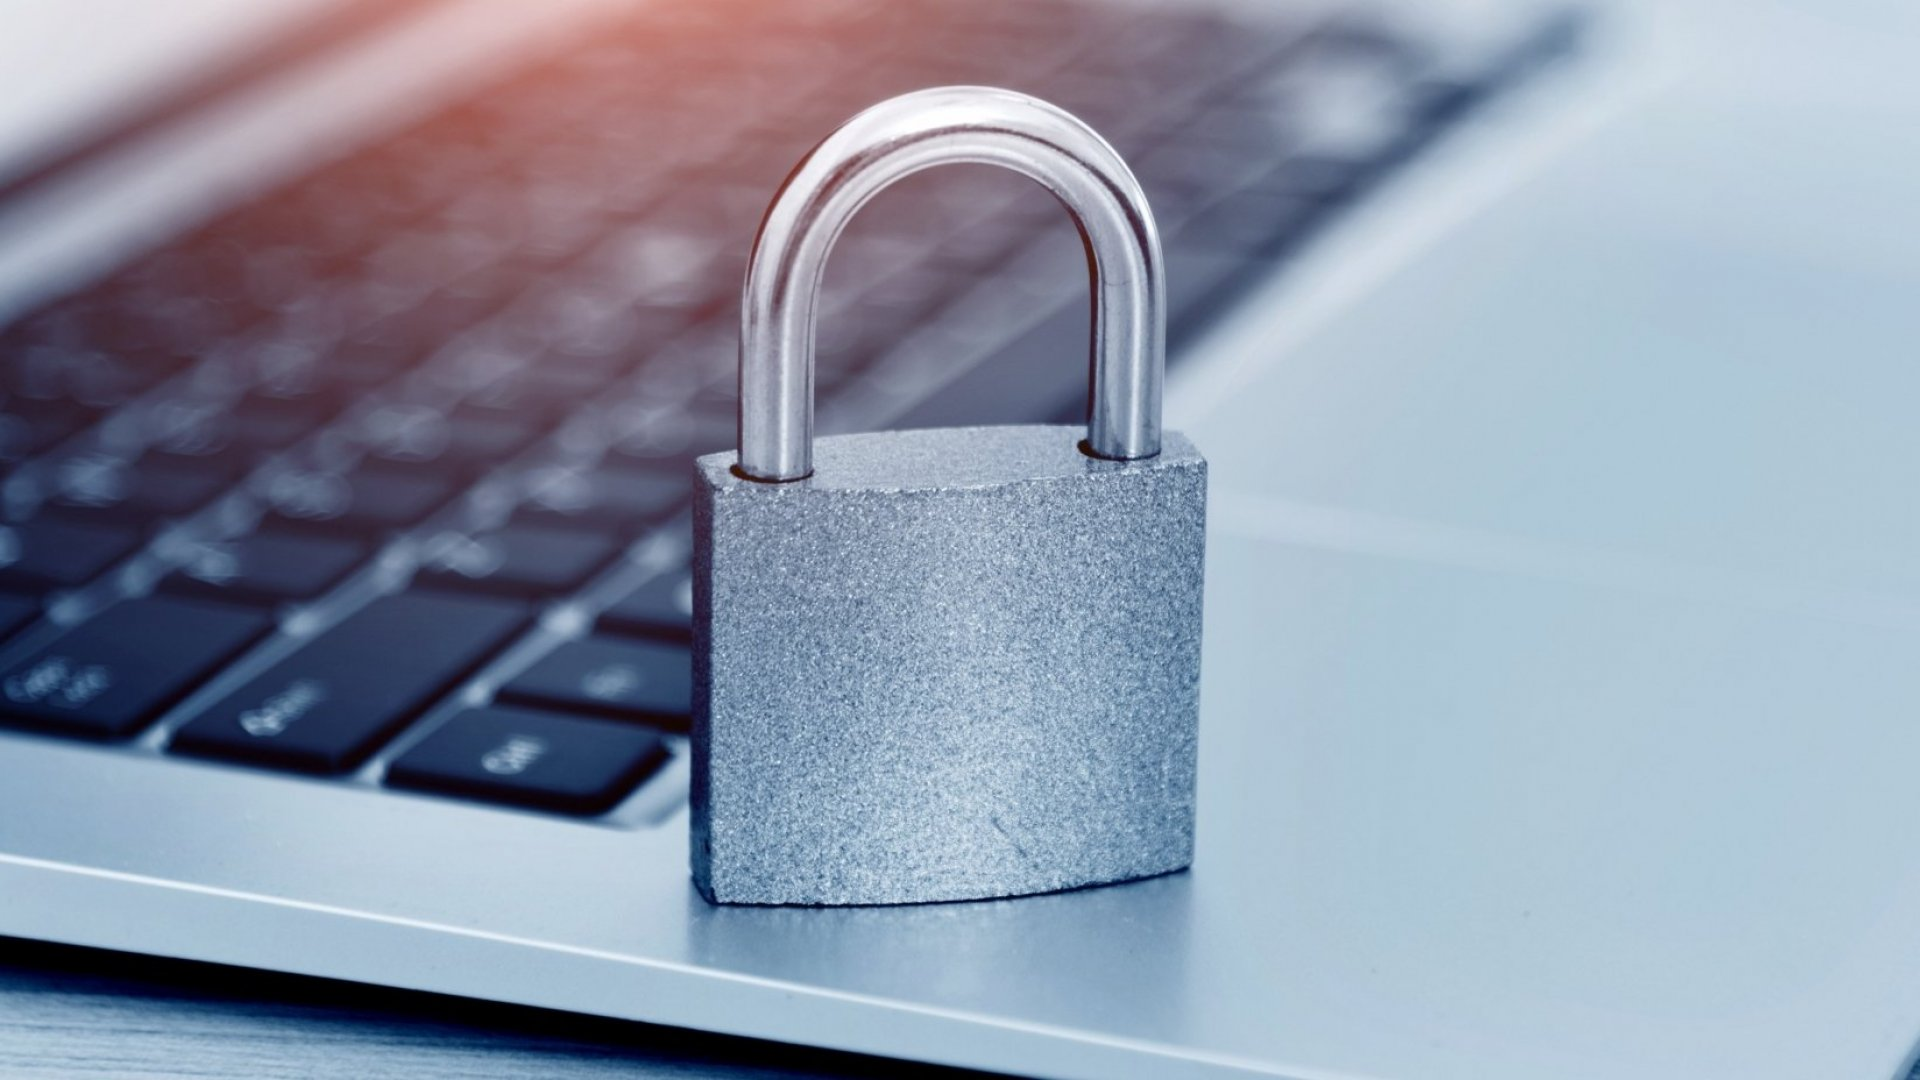 How to Reap the Benefits of the Internet of Things and Avoid Security Problems